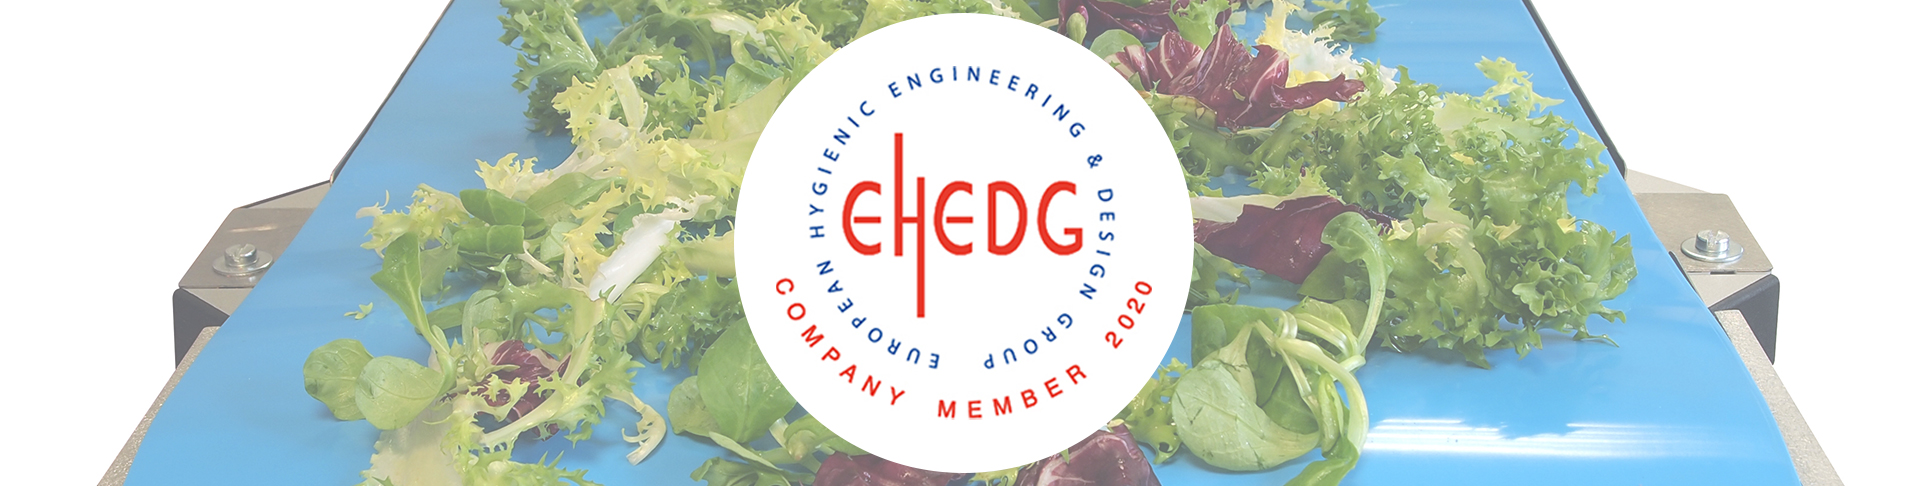 Mafdel is a member of EHEDG